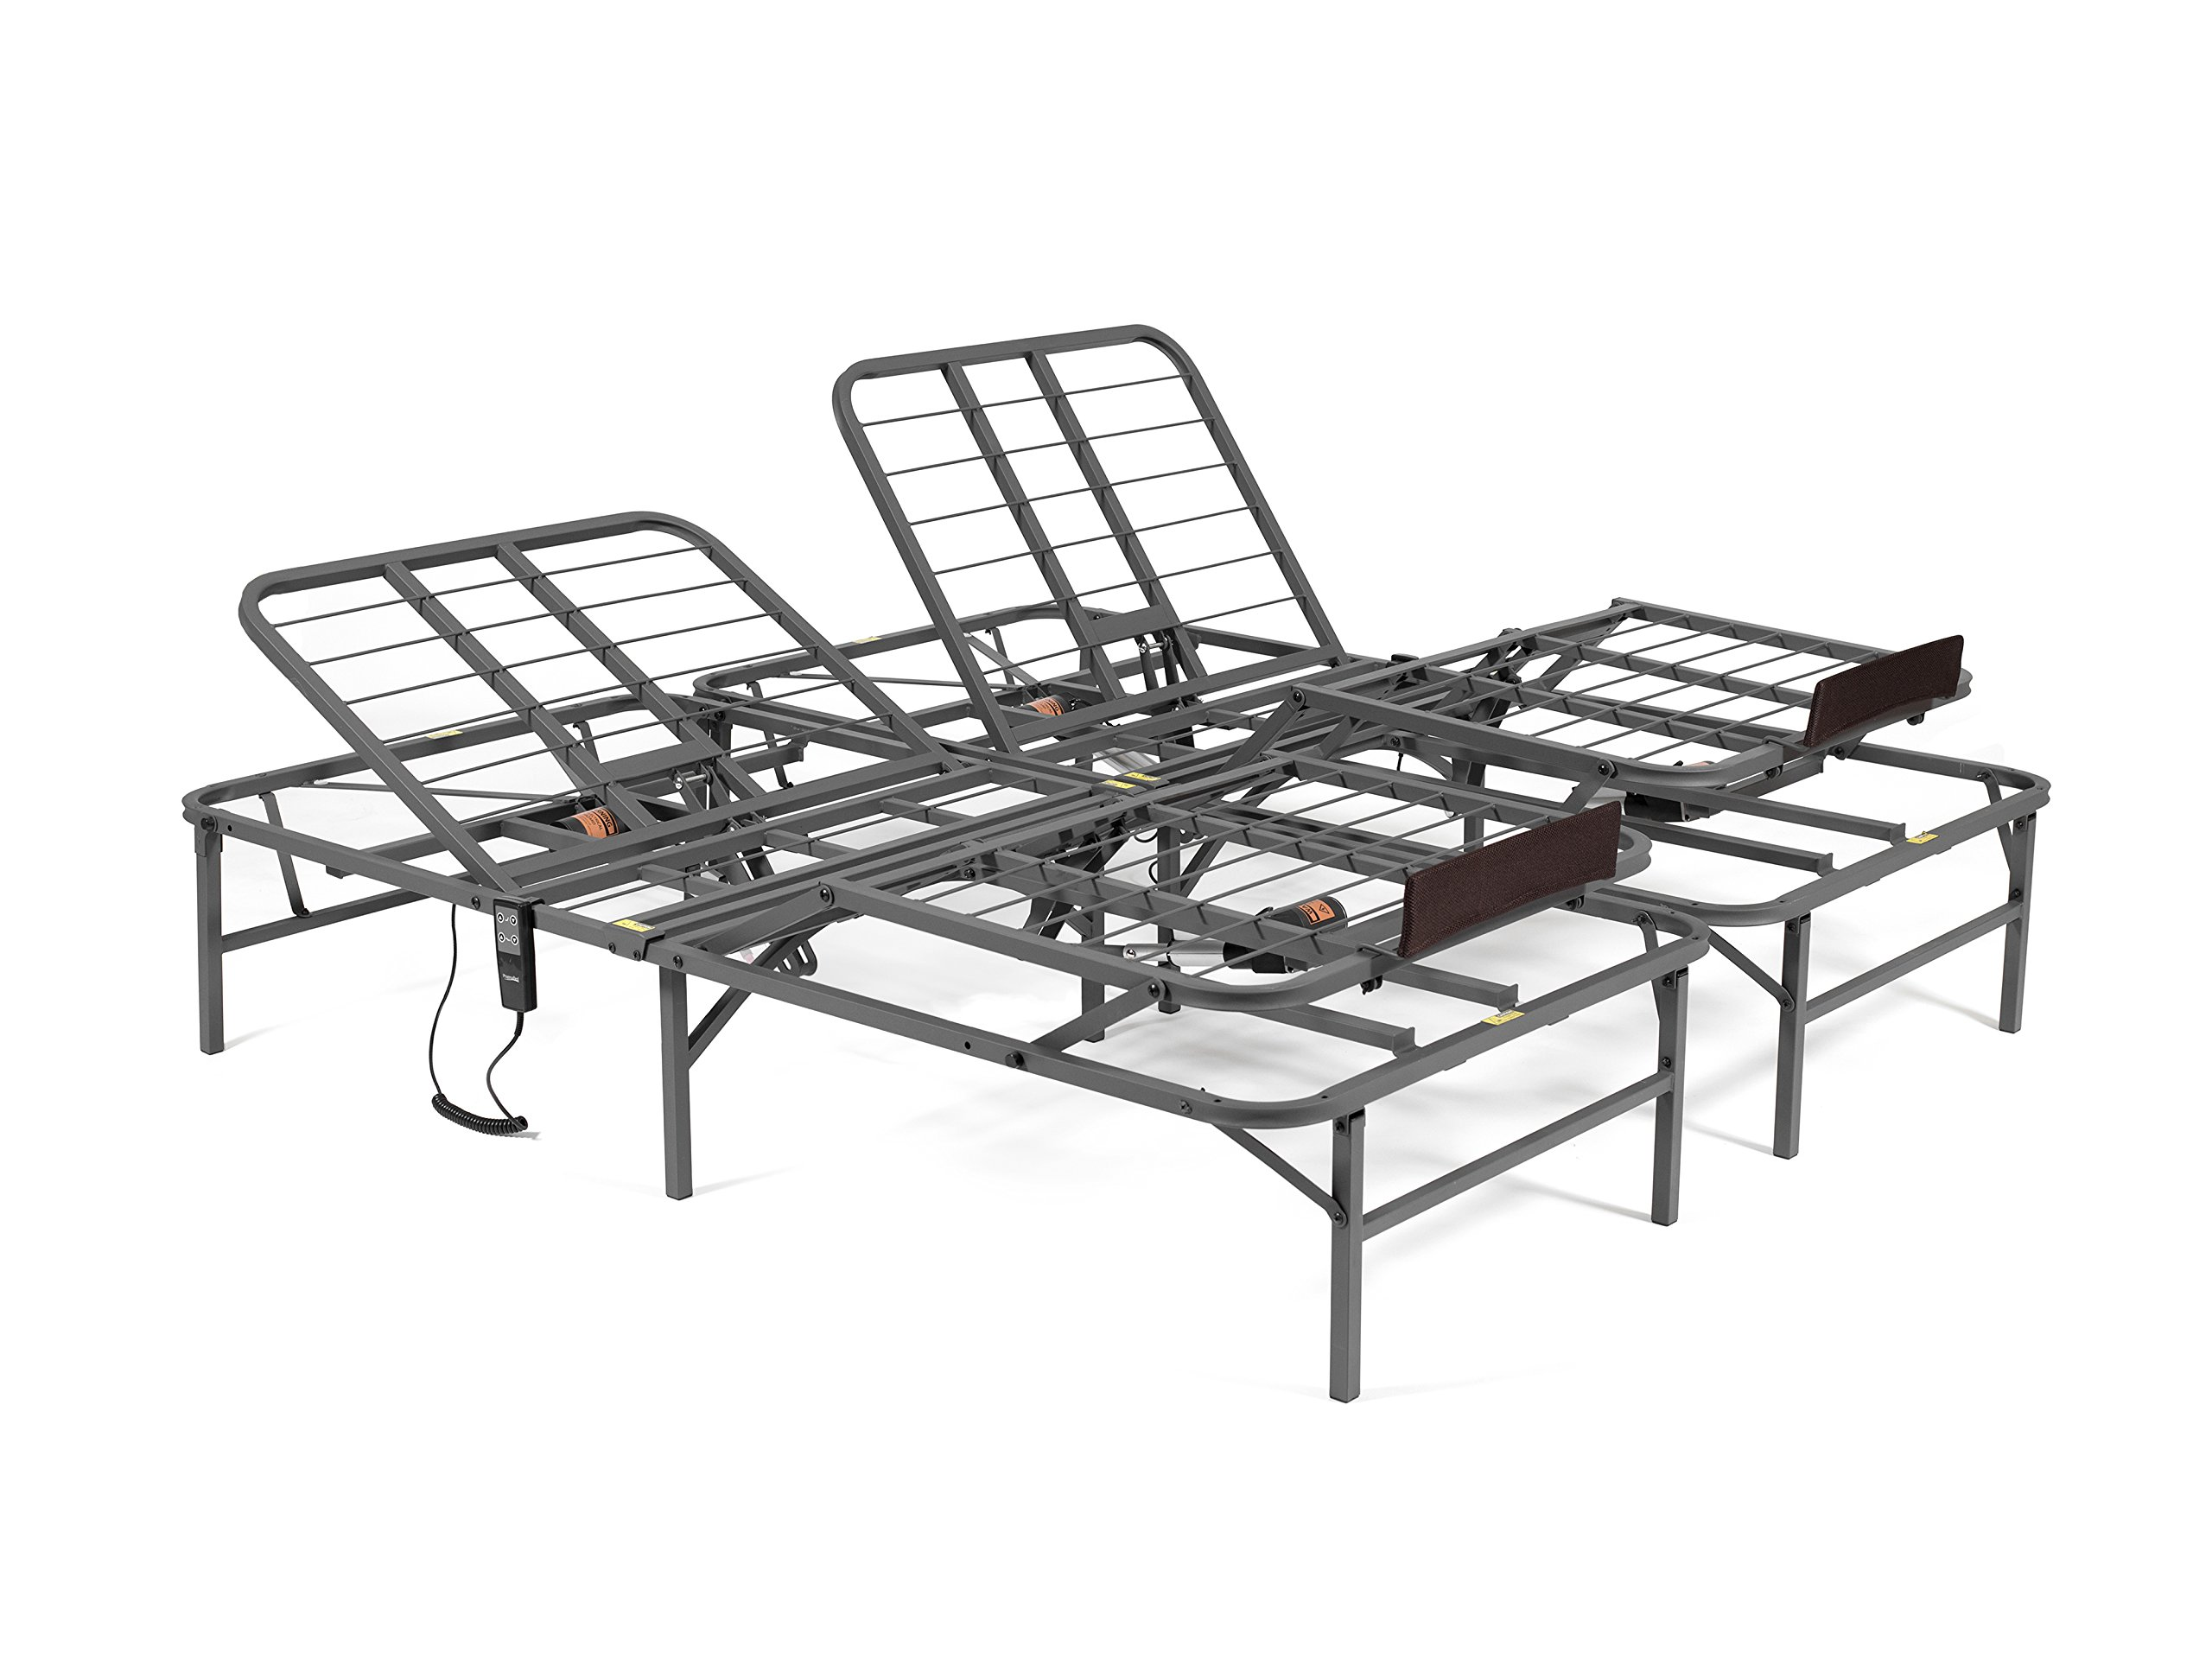 PragmaBed Pragmatic Adjustable Bed Frame, Head and Foot, California King, Gray by PragmaBed